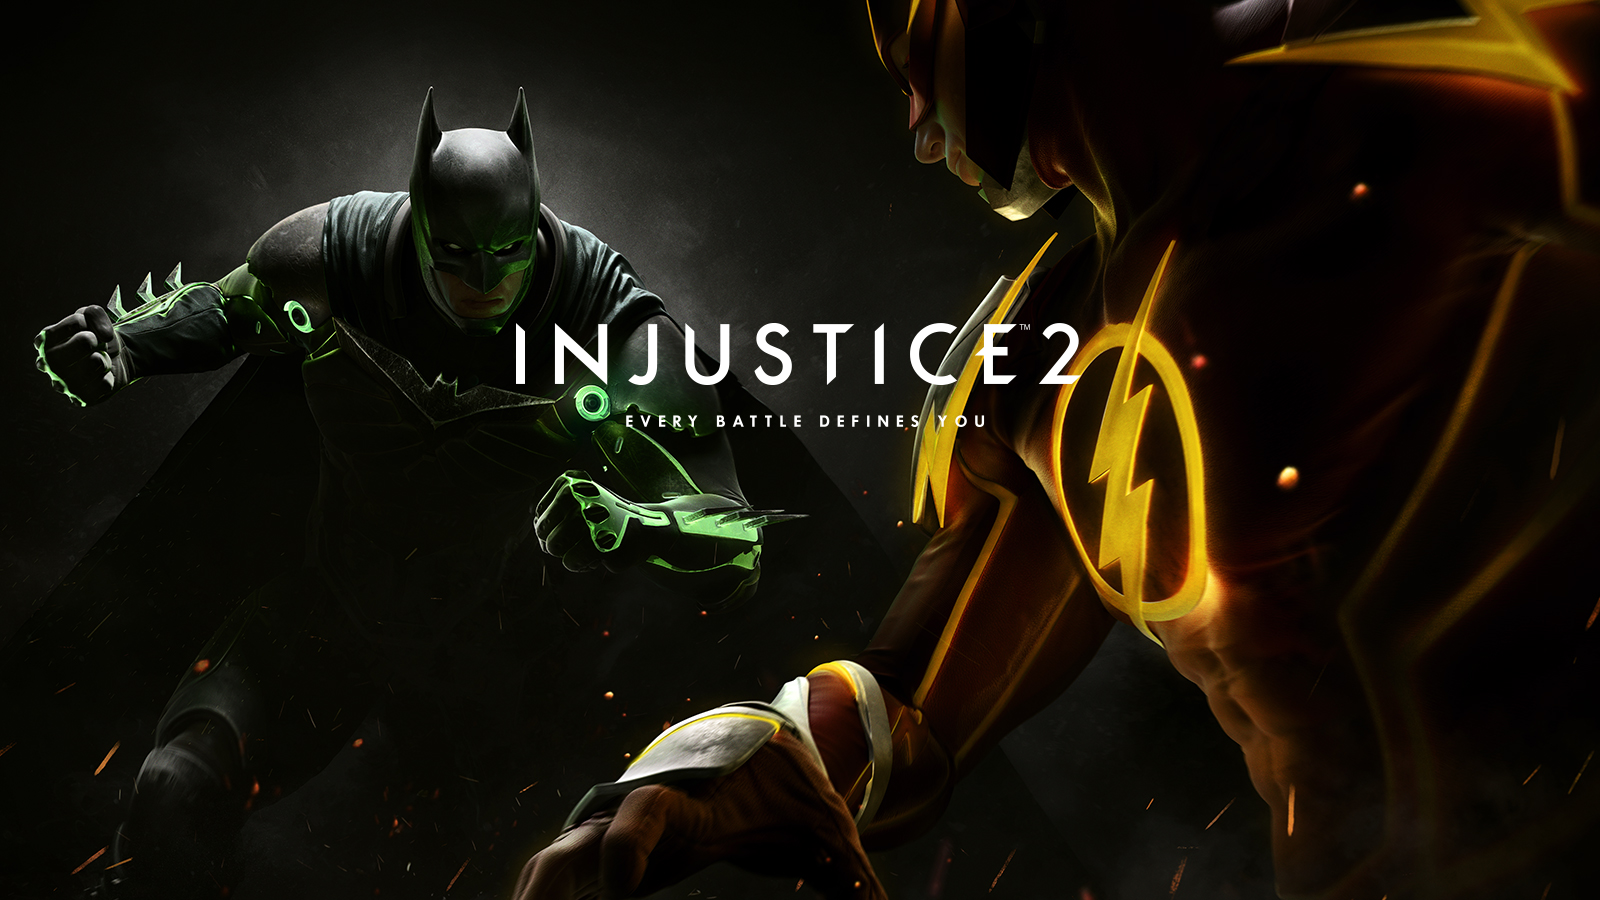 Last Game You Finished And Your Thoughts V3.0 - Page 5 Injustice-2-listing-thumb-01-ps4-us-06jun16?$Icon$